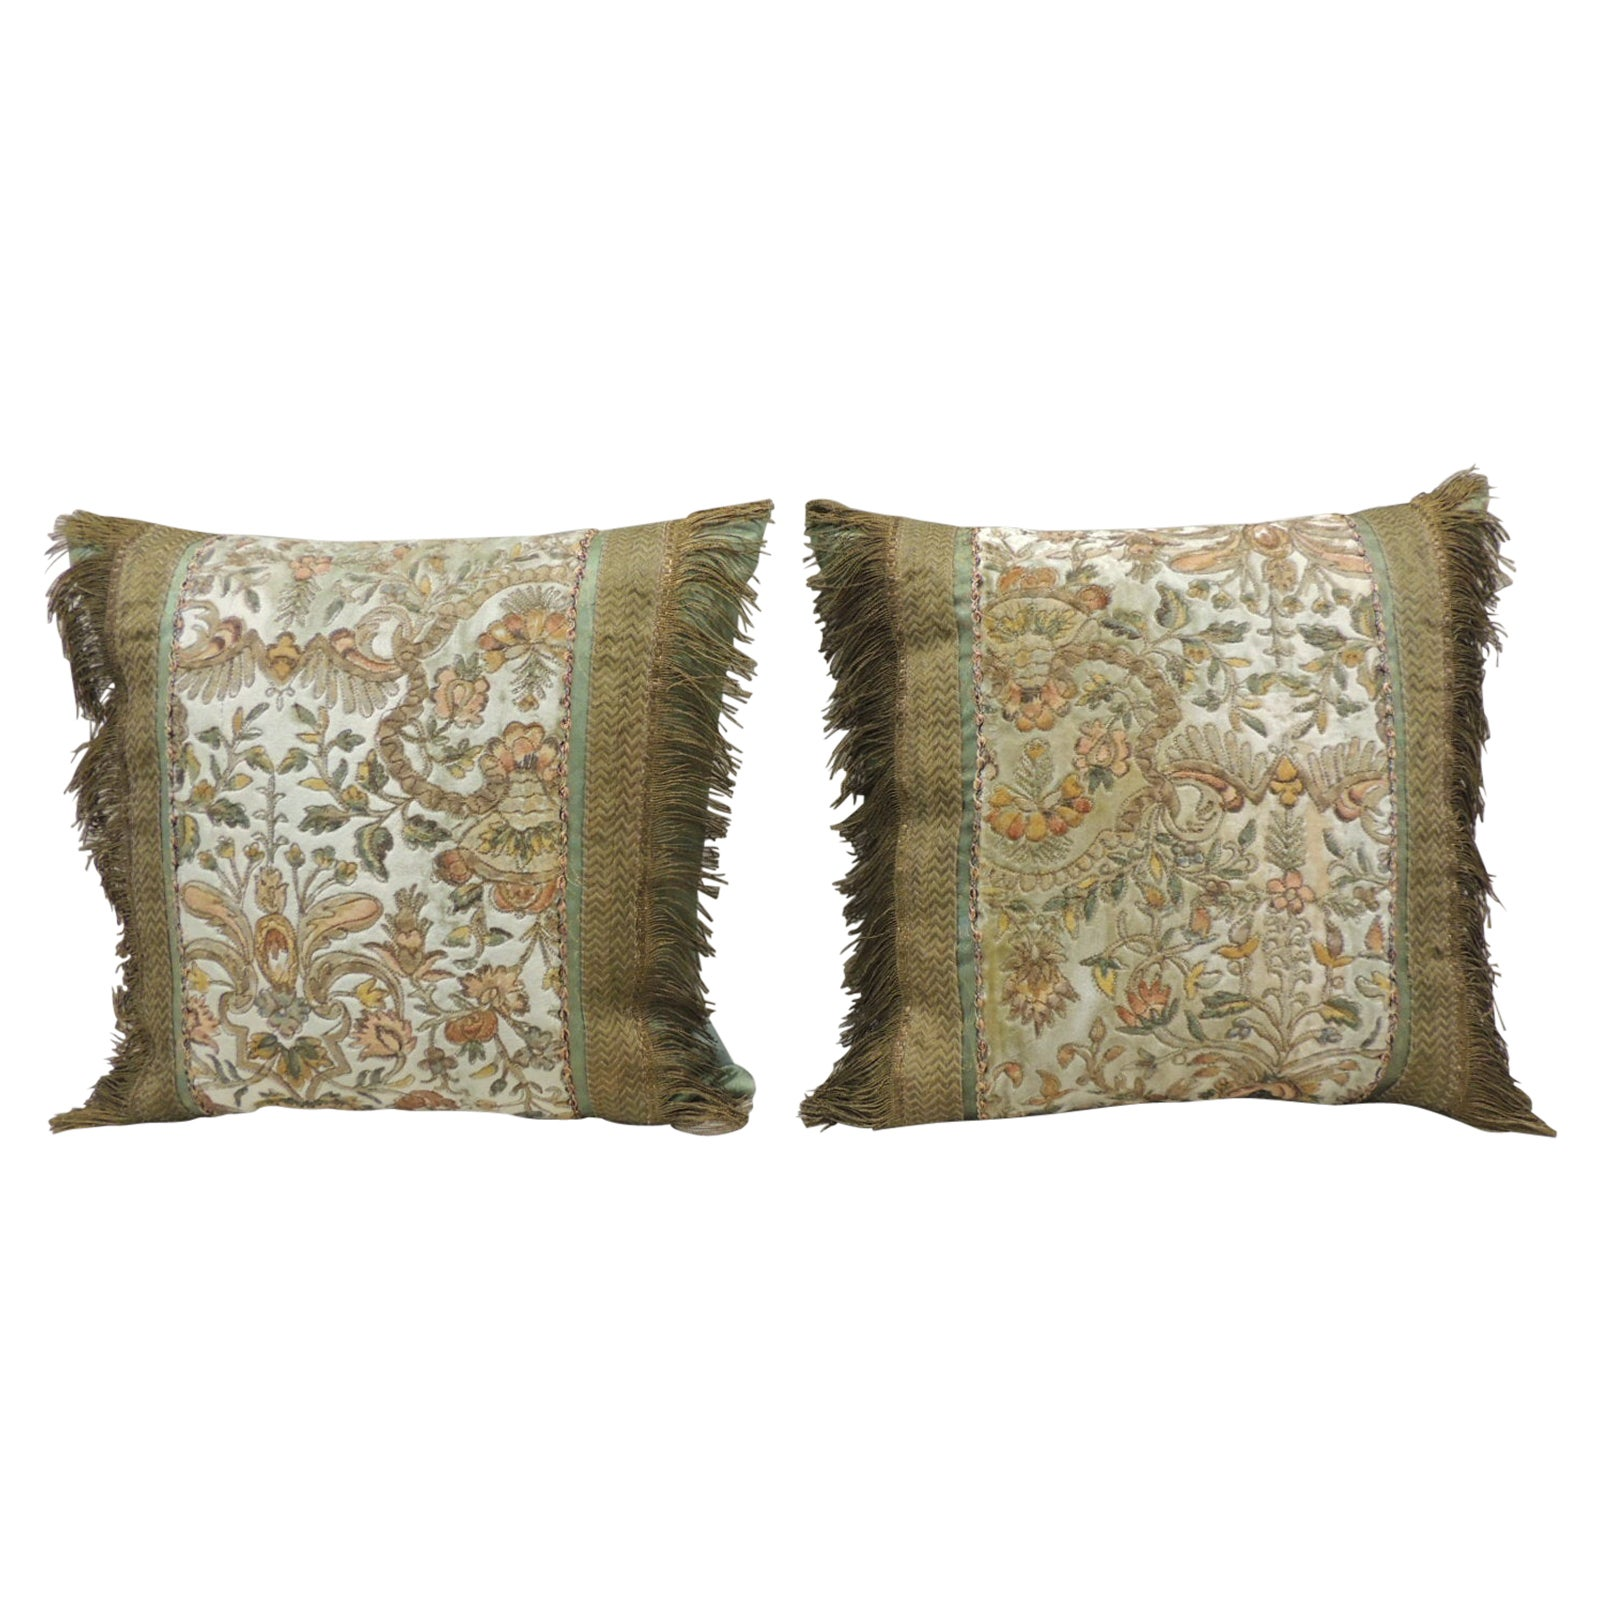 Pair of Gold and Green Antique Velvet Embroidered Square Decorative Pillows